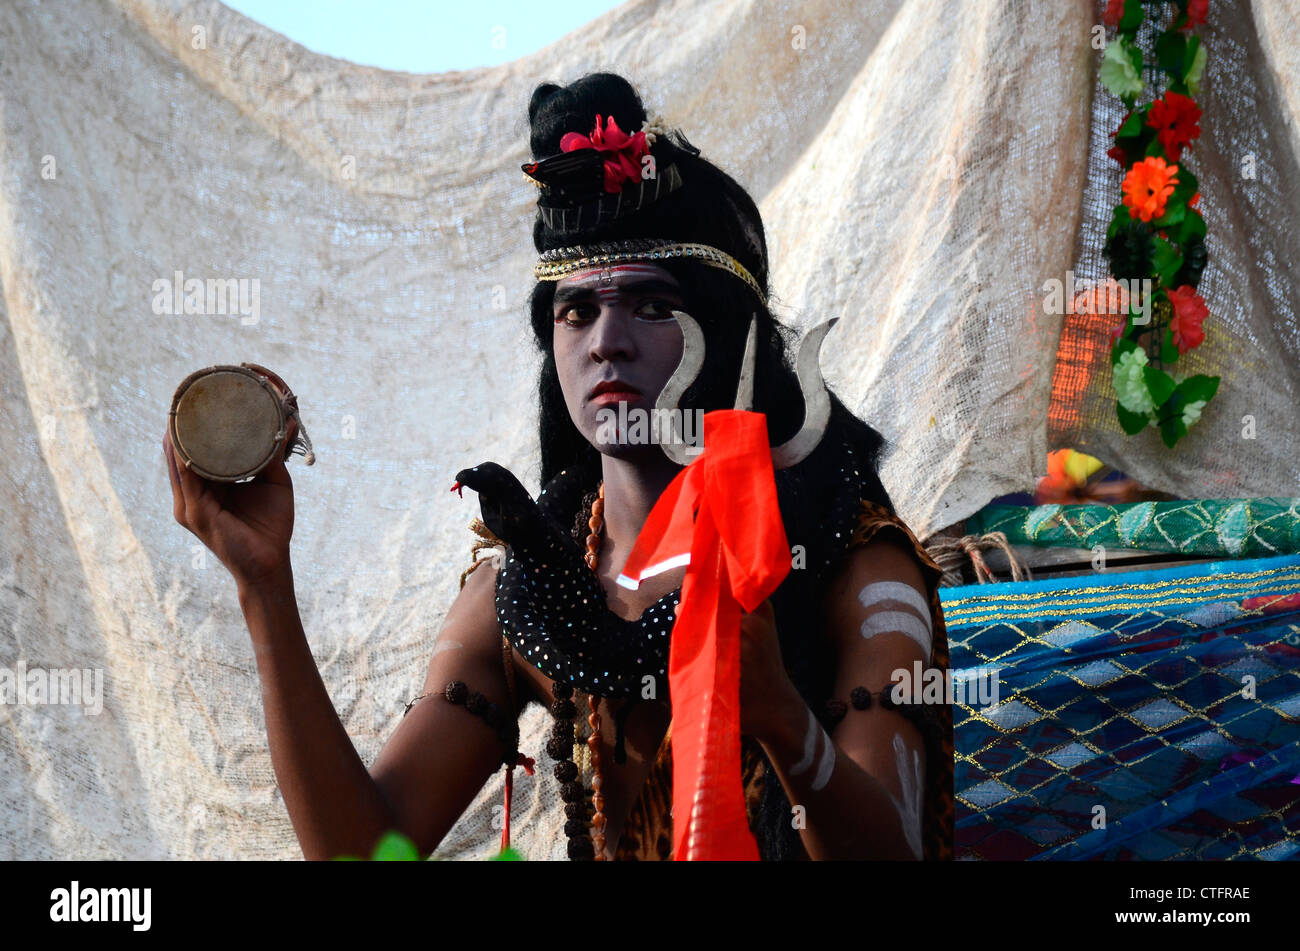 A man posing as Lord Shiva in a float - Stock Image